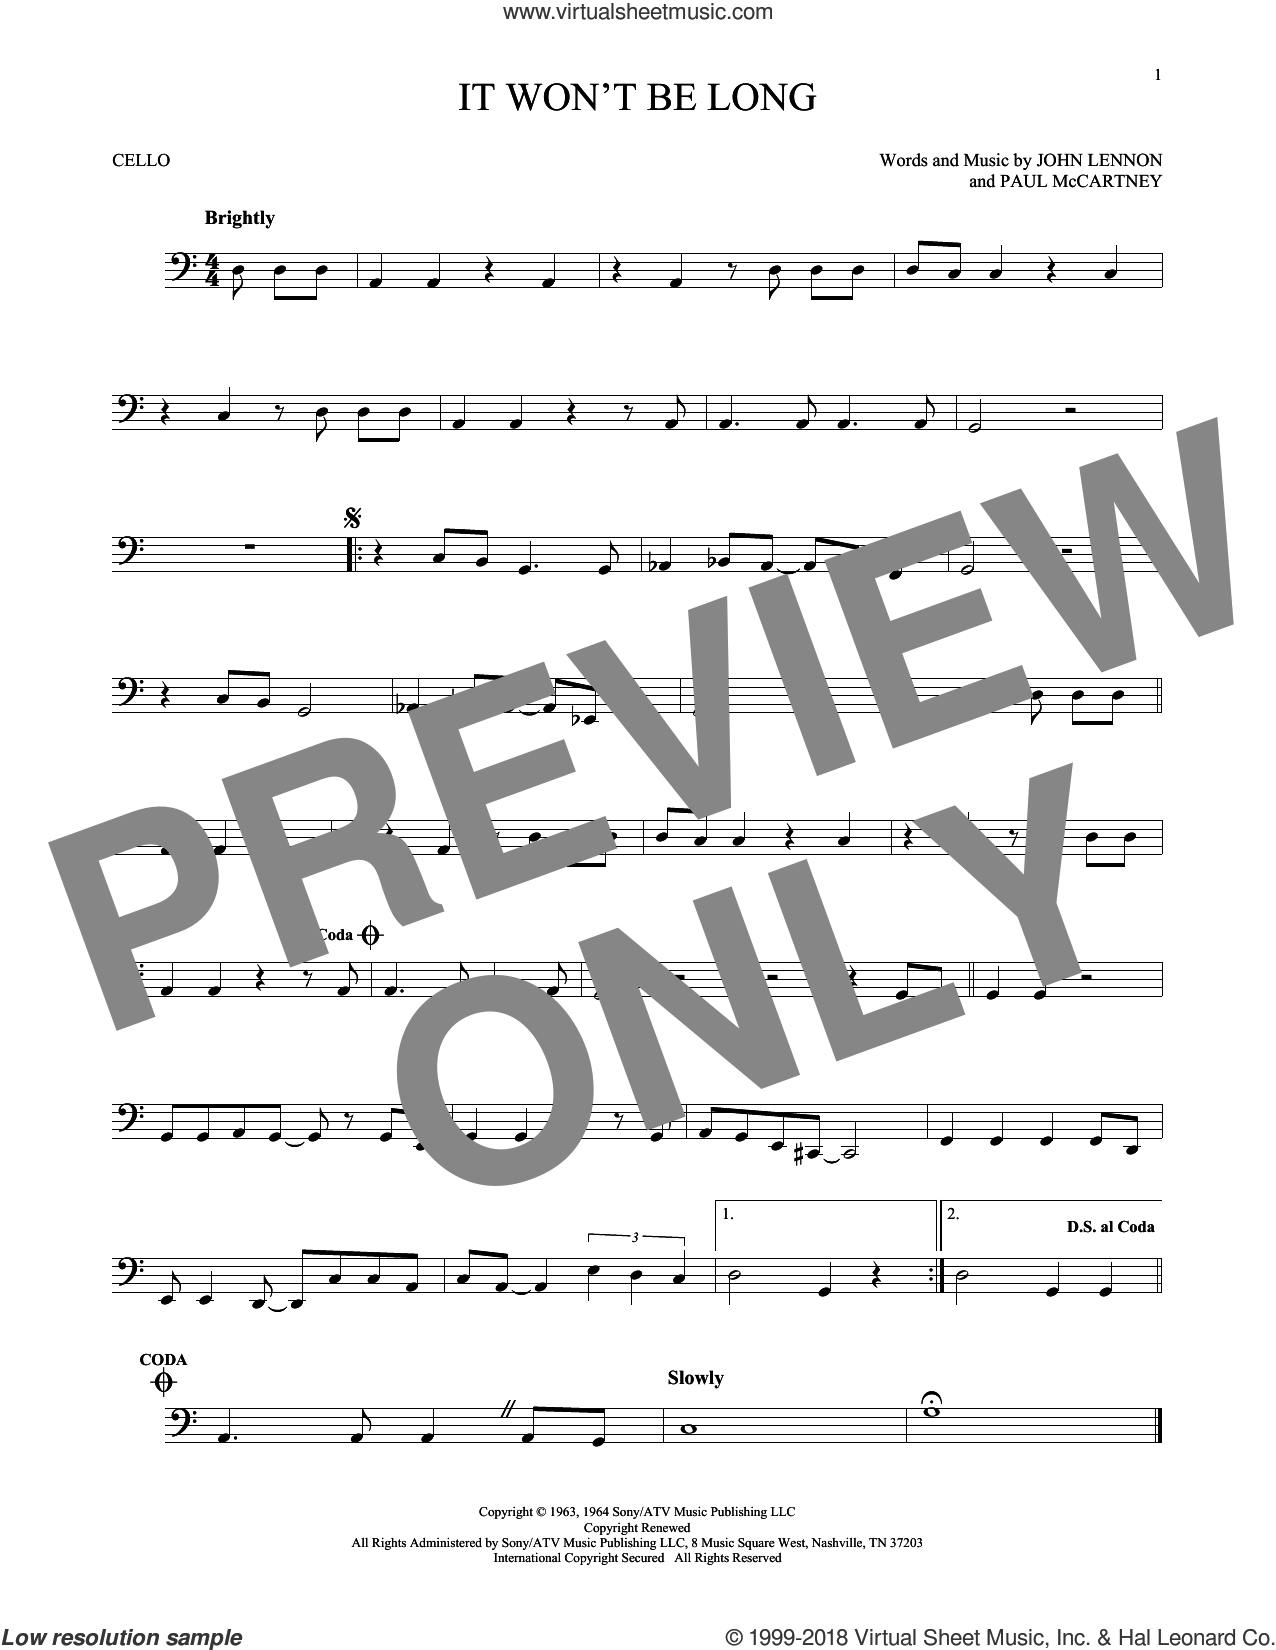 It Won't Be Long sheet music for cello solo by The Beatles, John Lennon and Paul McCartney, intermediate. Score Image Preview.